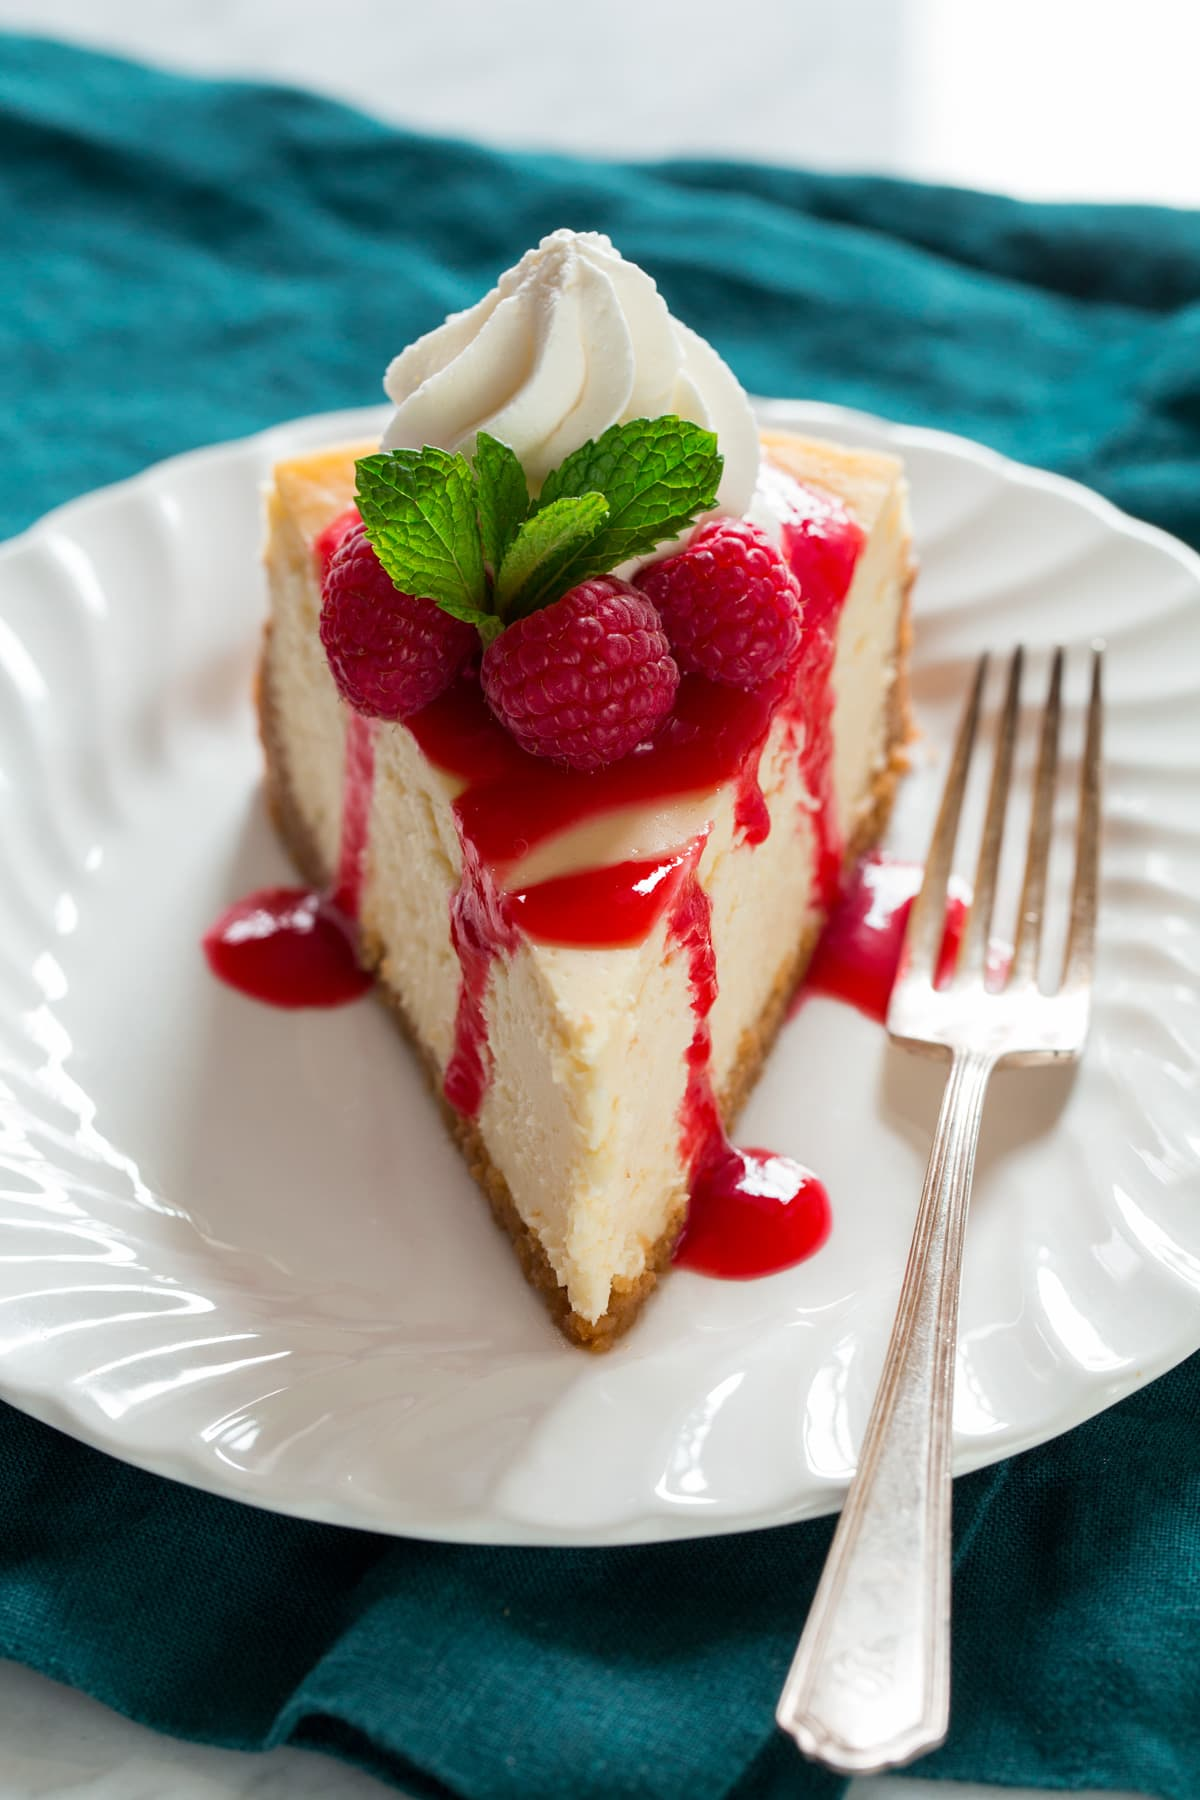 Slice of cheesecake topped with raspberry sauce, fresh raspberries, whipped cream and mint.